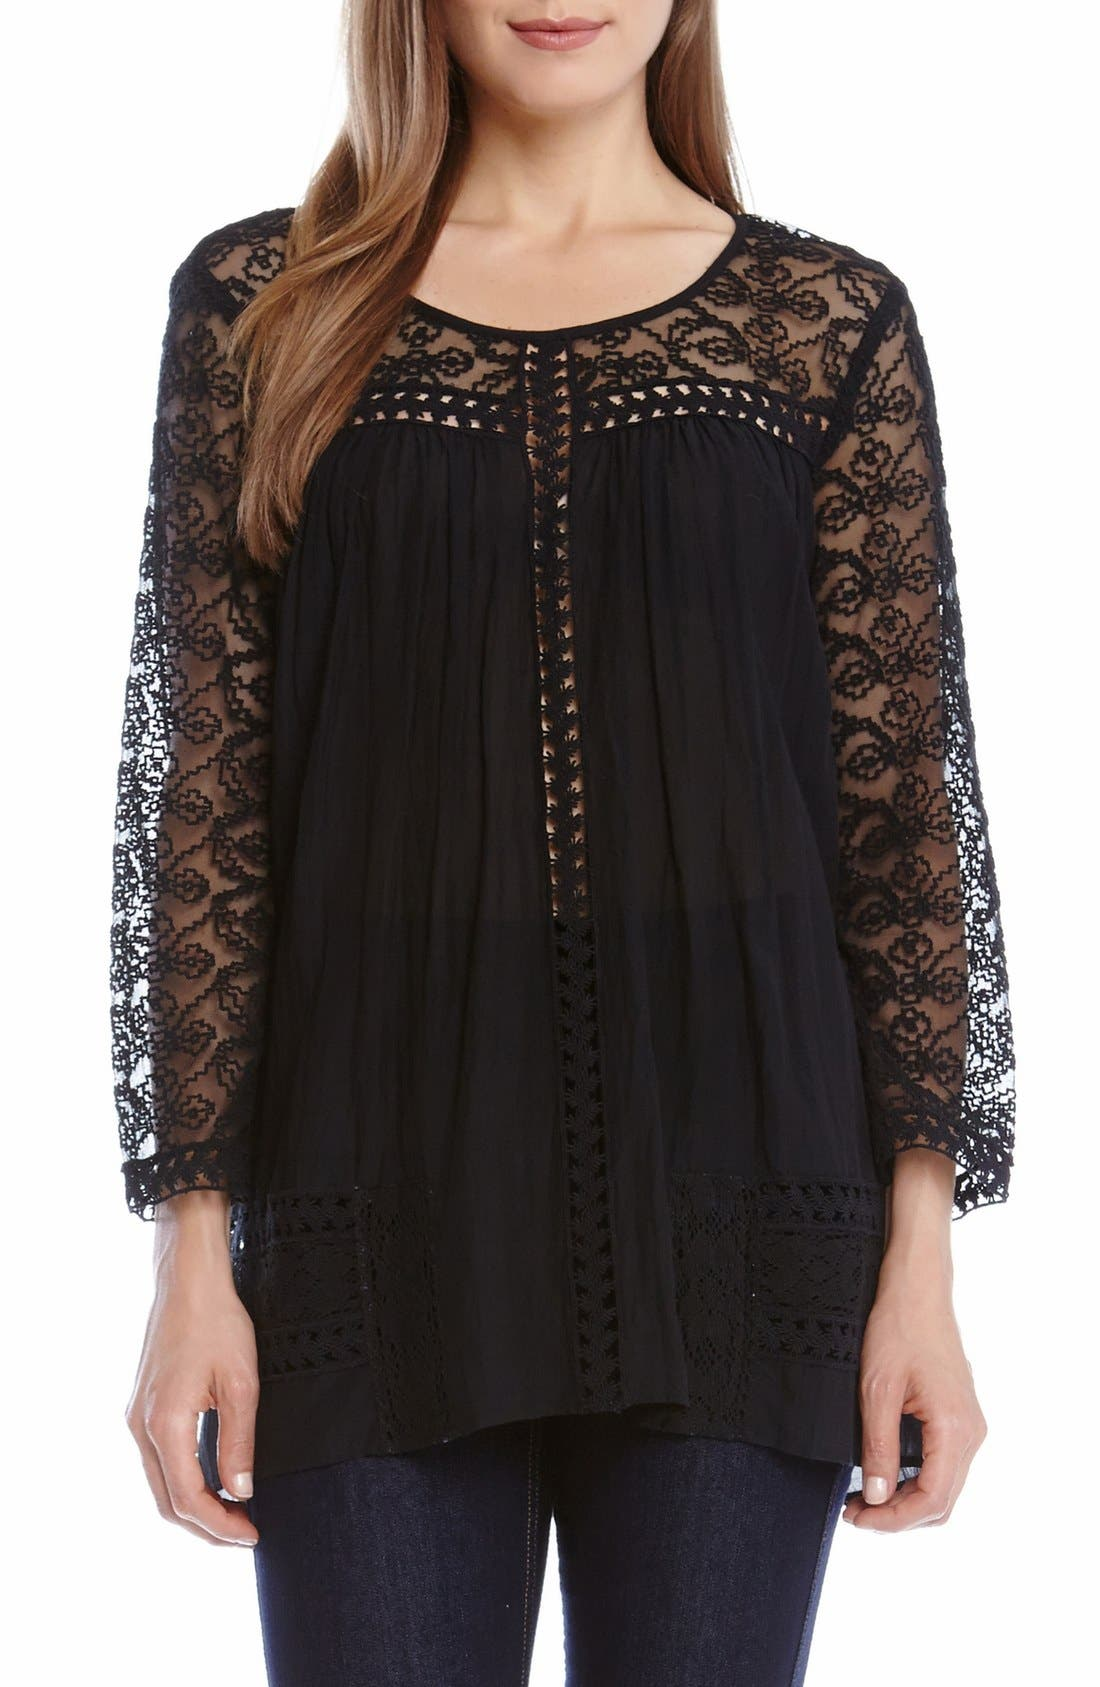 Alternate Image 1 Selected - Karen Kane Mixed Lace Inset Peasant Top